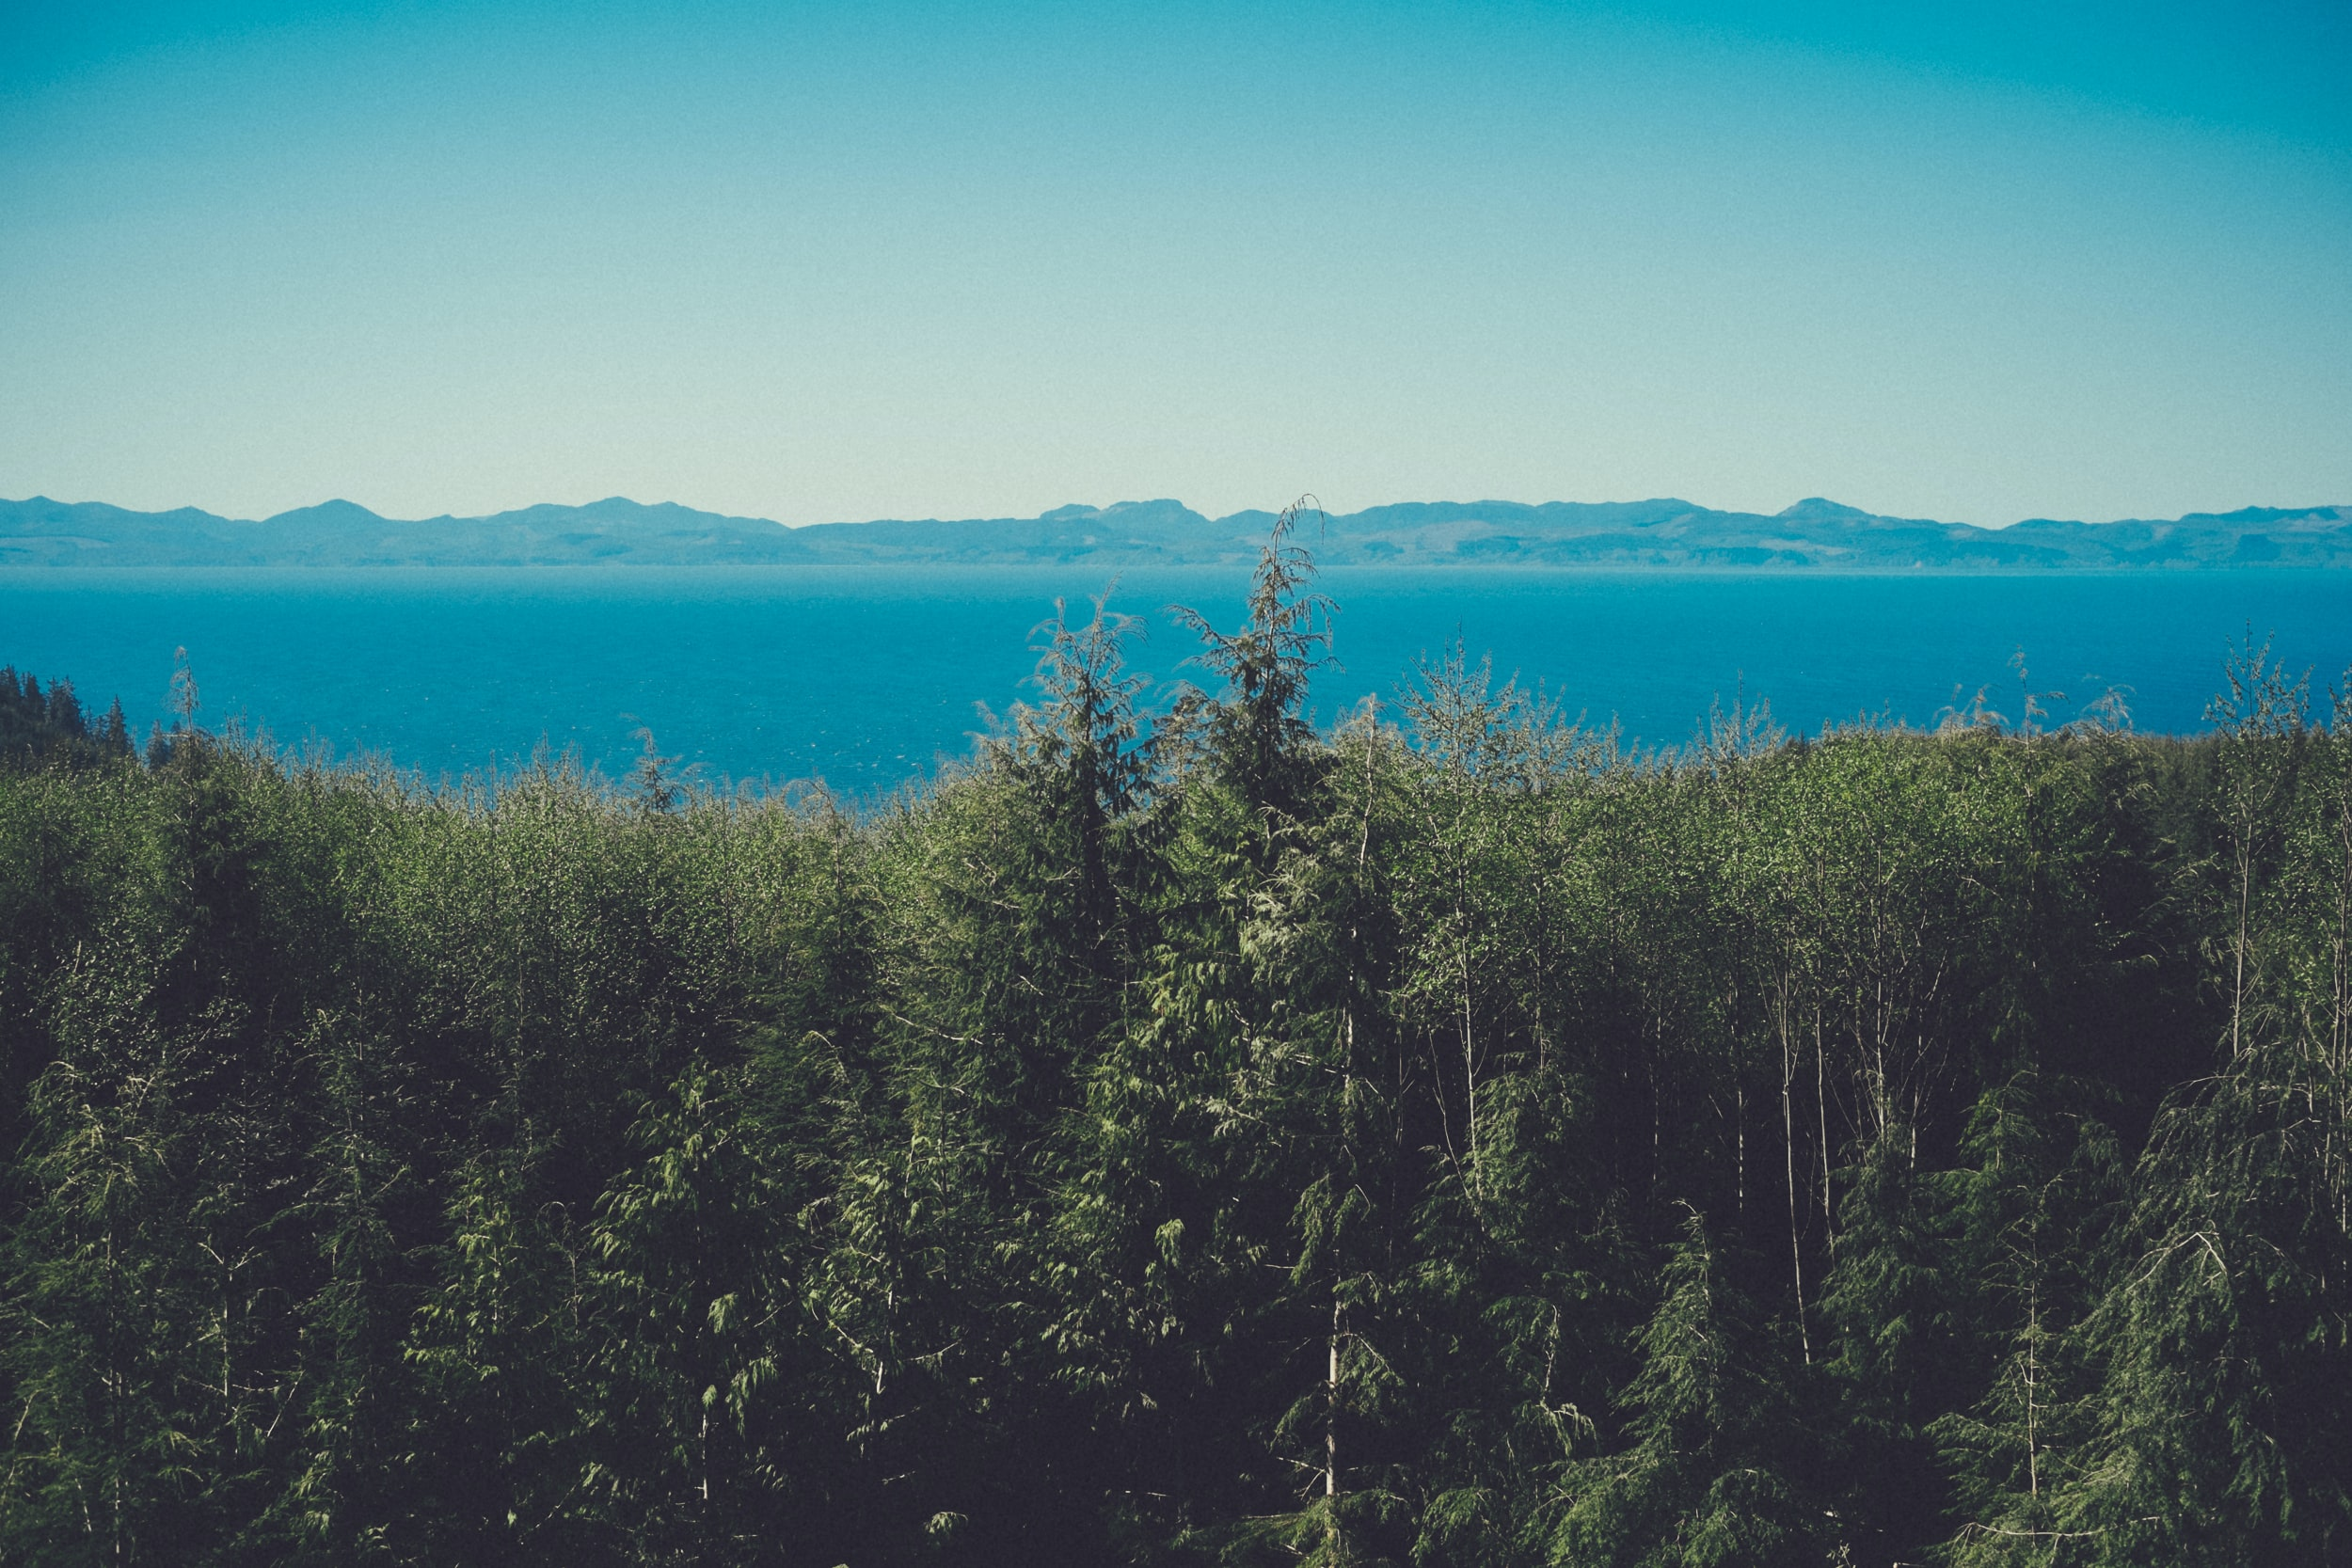 An evergreen forest over azure water with hills on the horizon